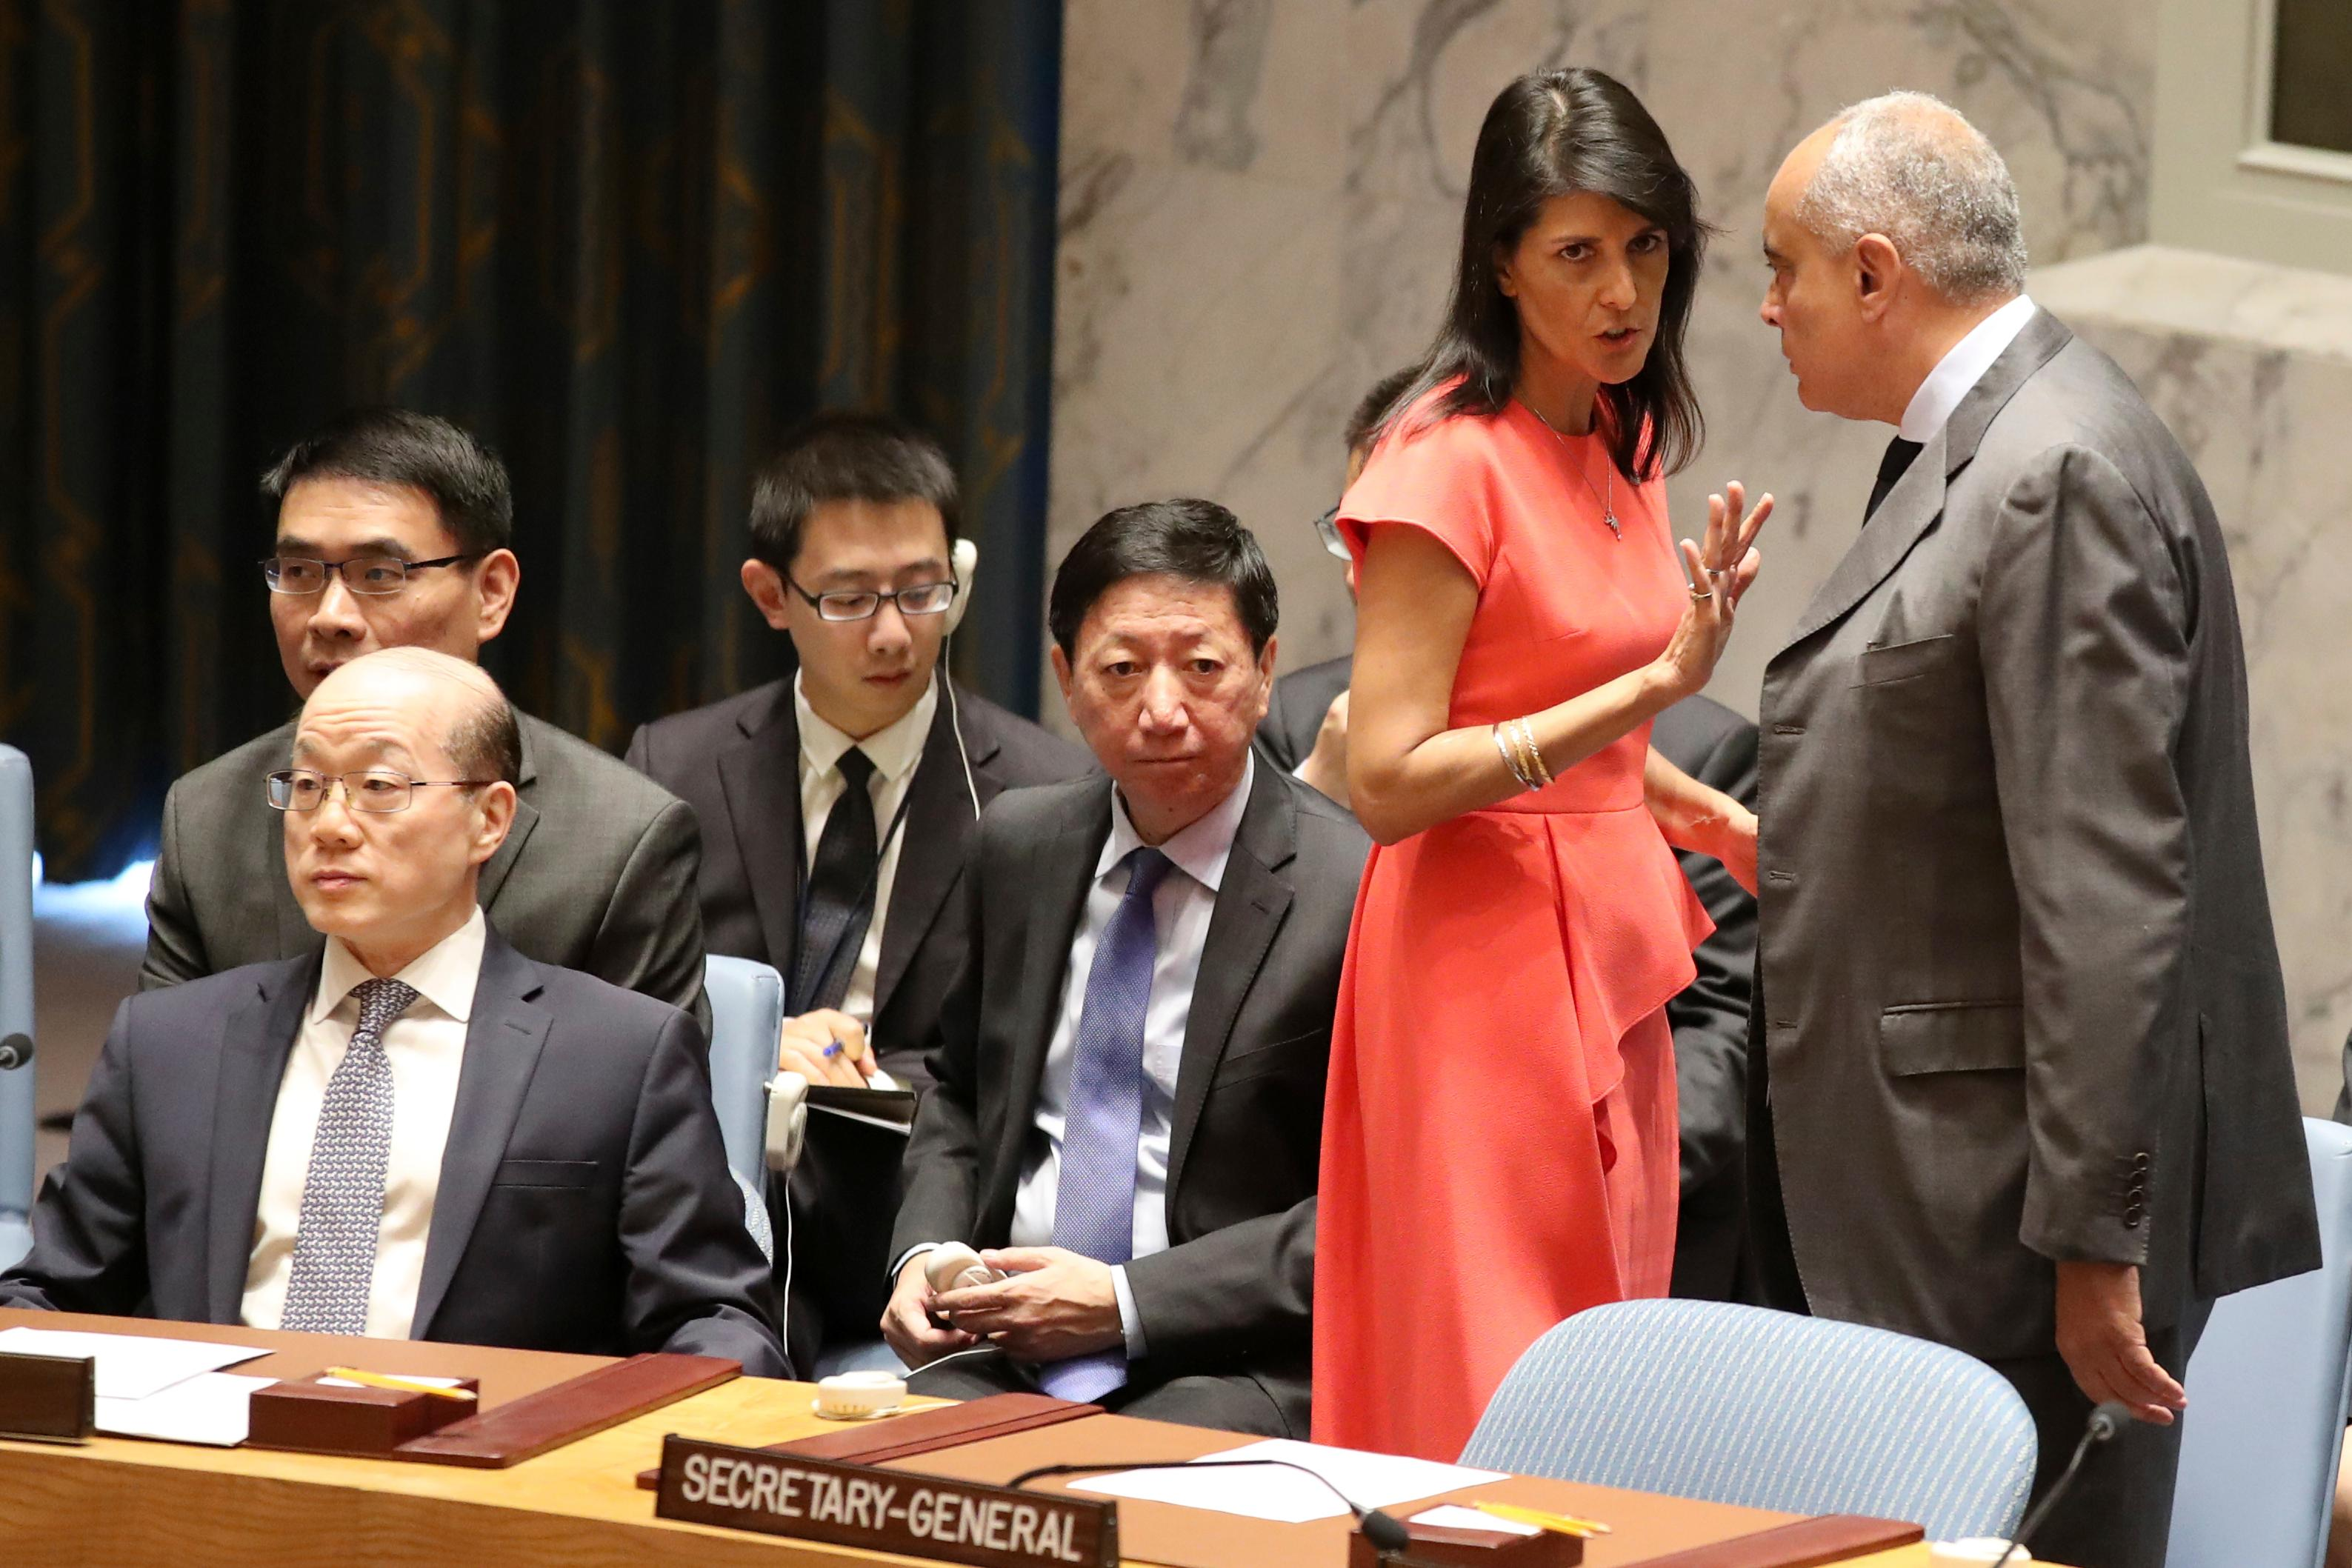 U.S. Ambassador to the United Nations Nikki Haley, left, speaks to Egyptian Ambassador and current Security Council President Amr Abdellatif Aboulatta before a Security Council vote on a new sanctions resolution that would increase economic pressure on North Korea to return to negotiations on its missile program, Saturday, Aug. 5, 2017 at U.N. headquarters. (AP Photo/Mary Altaffer)